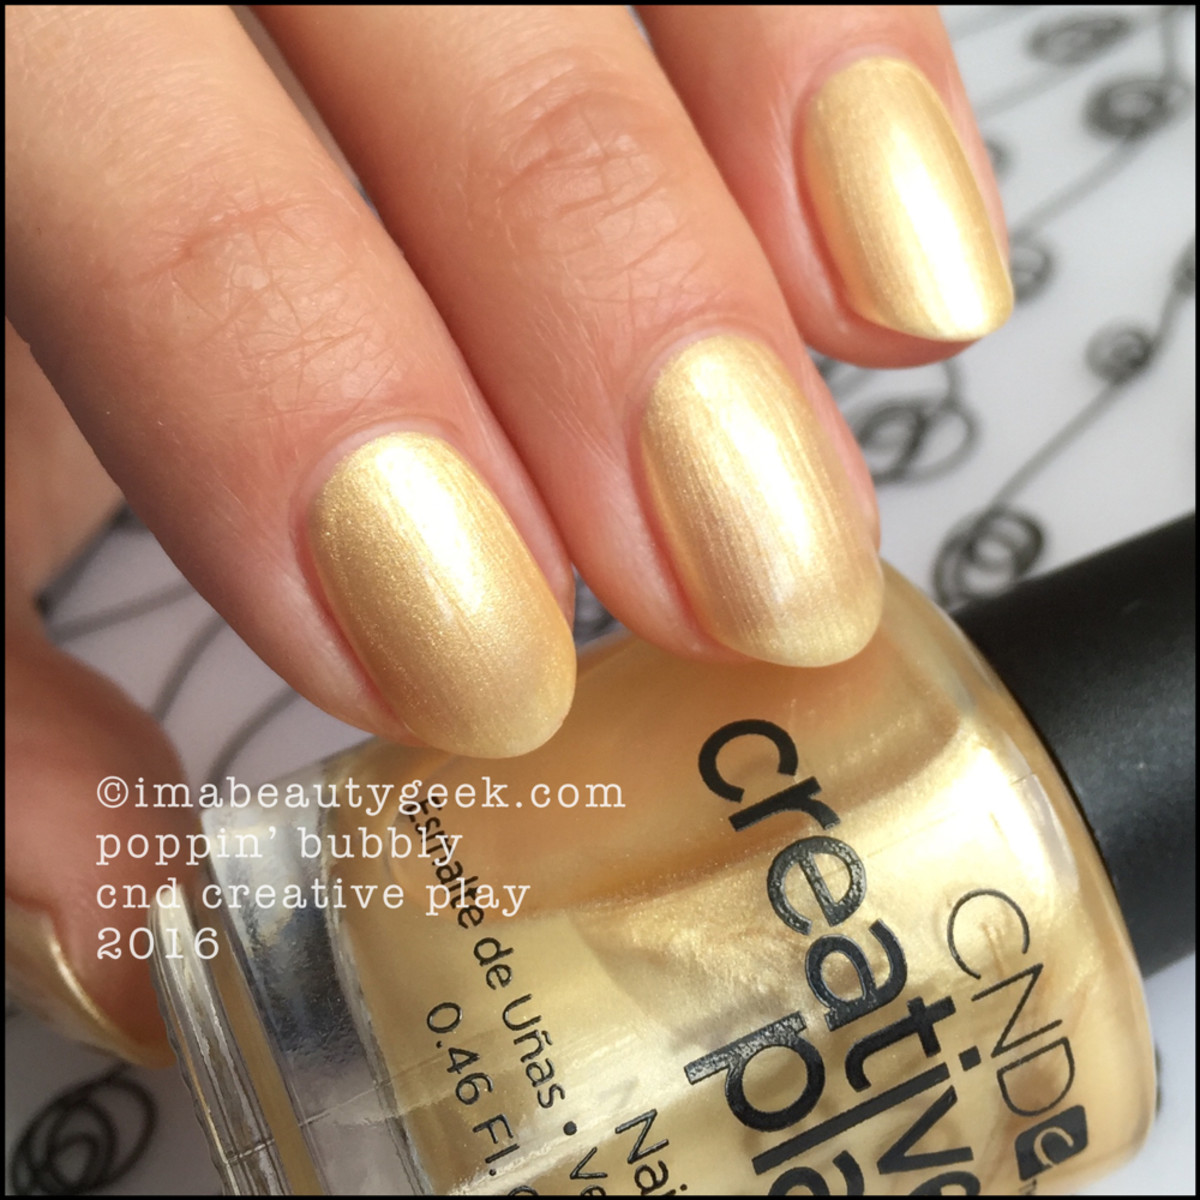 CND Creative Play Poppin Bubbly_CND Creative Play Nail Polish Swatches